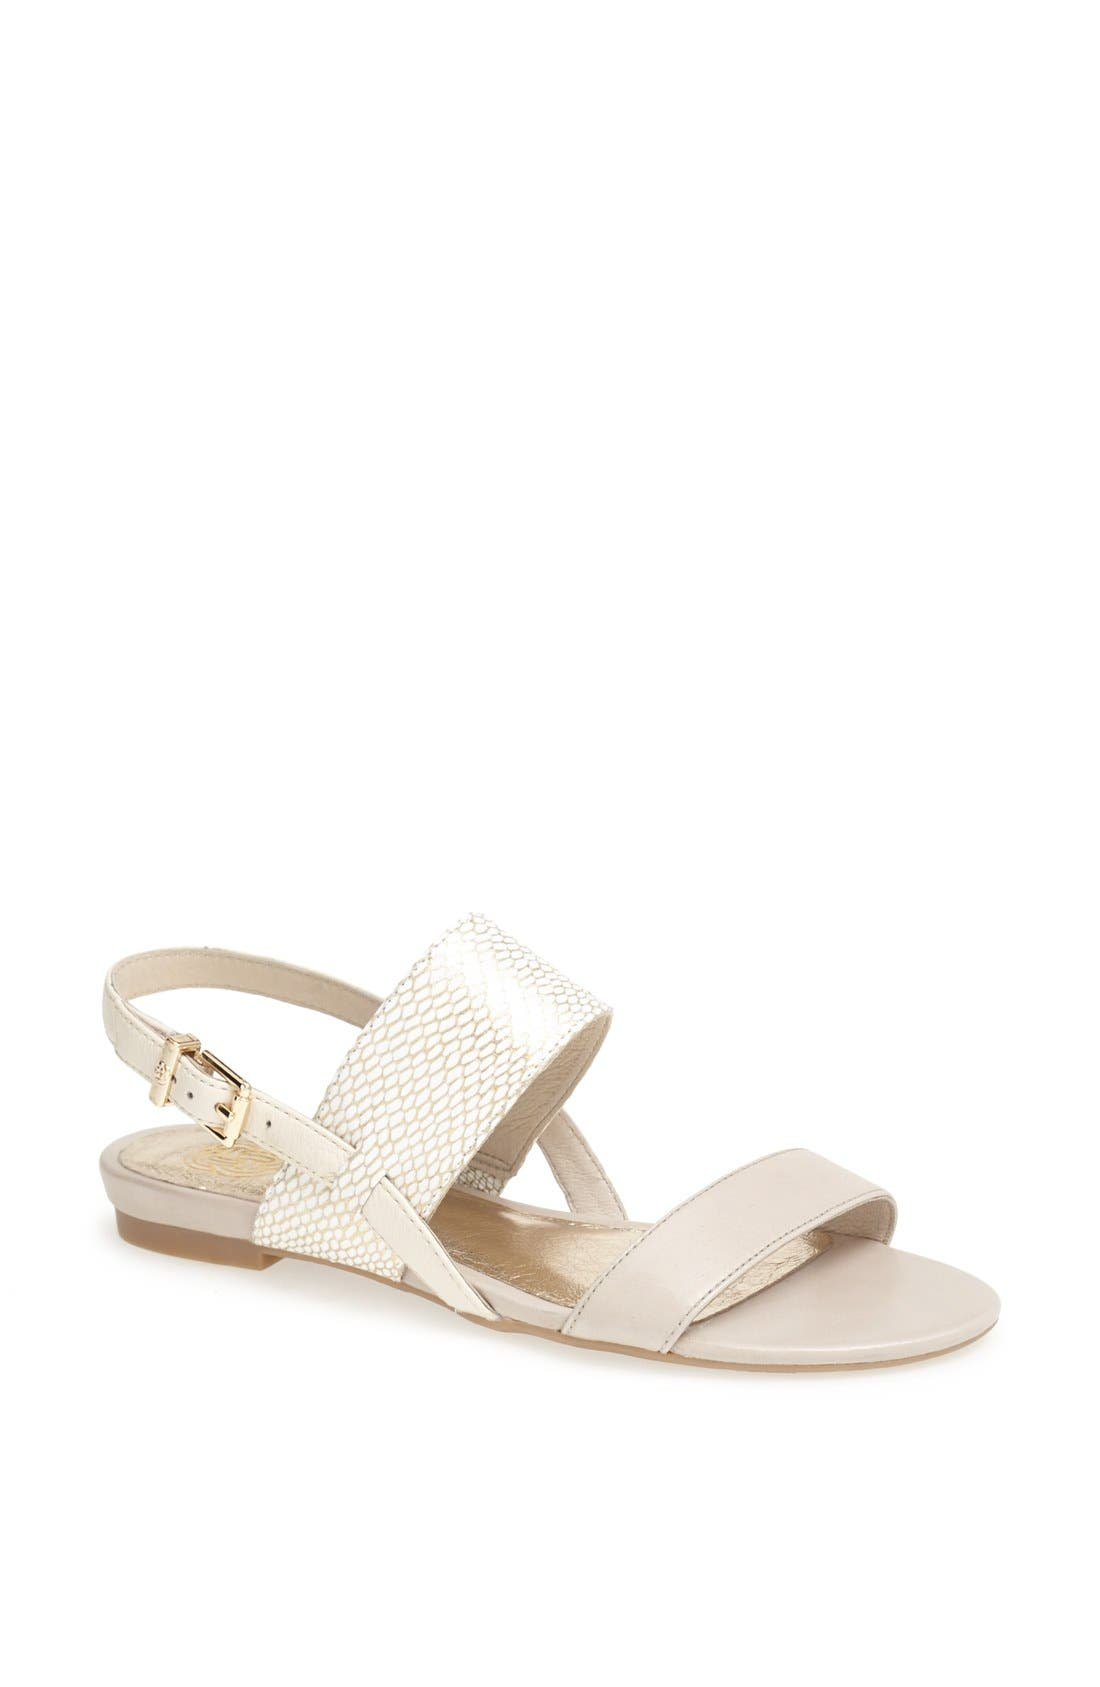 Alternate Image 1 Selected - Elliott Lucca 'Mia' Sandal